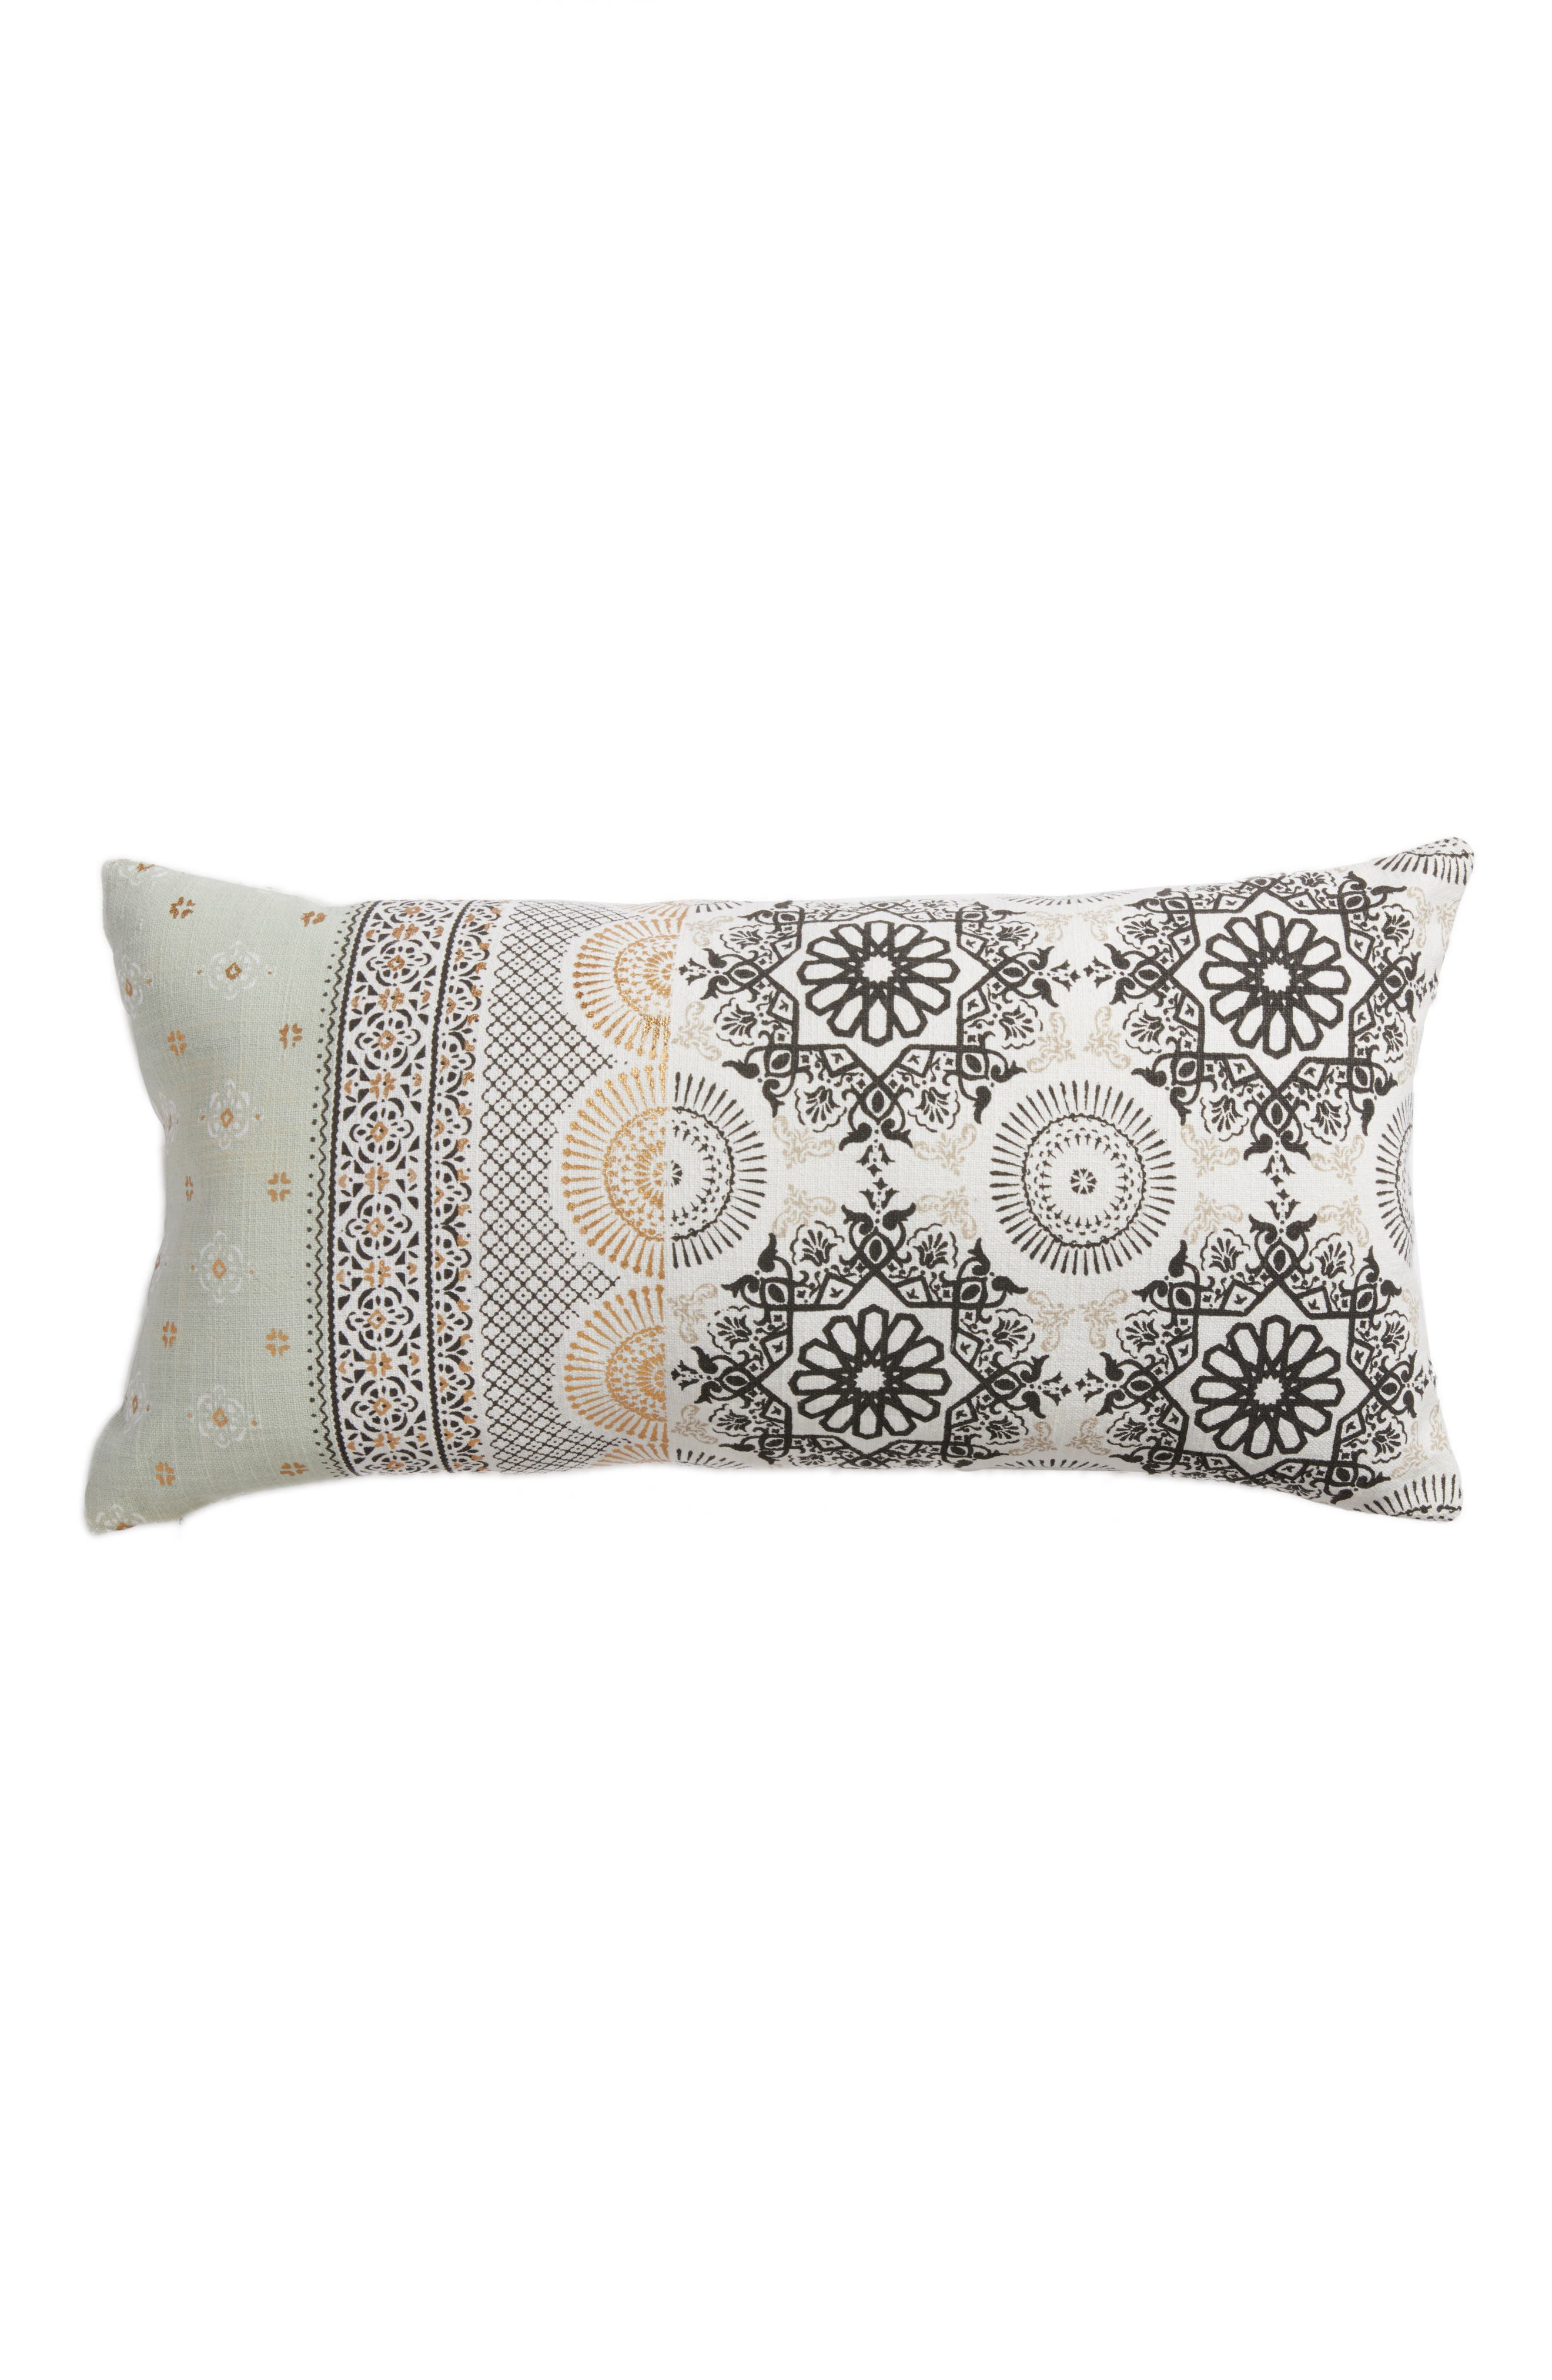 Moroccan Print Accent Pillow,                             Main thumbnail 1, color,                             Ivory Multi